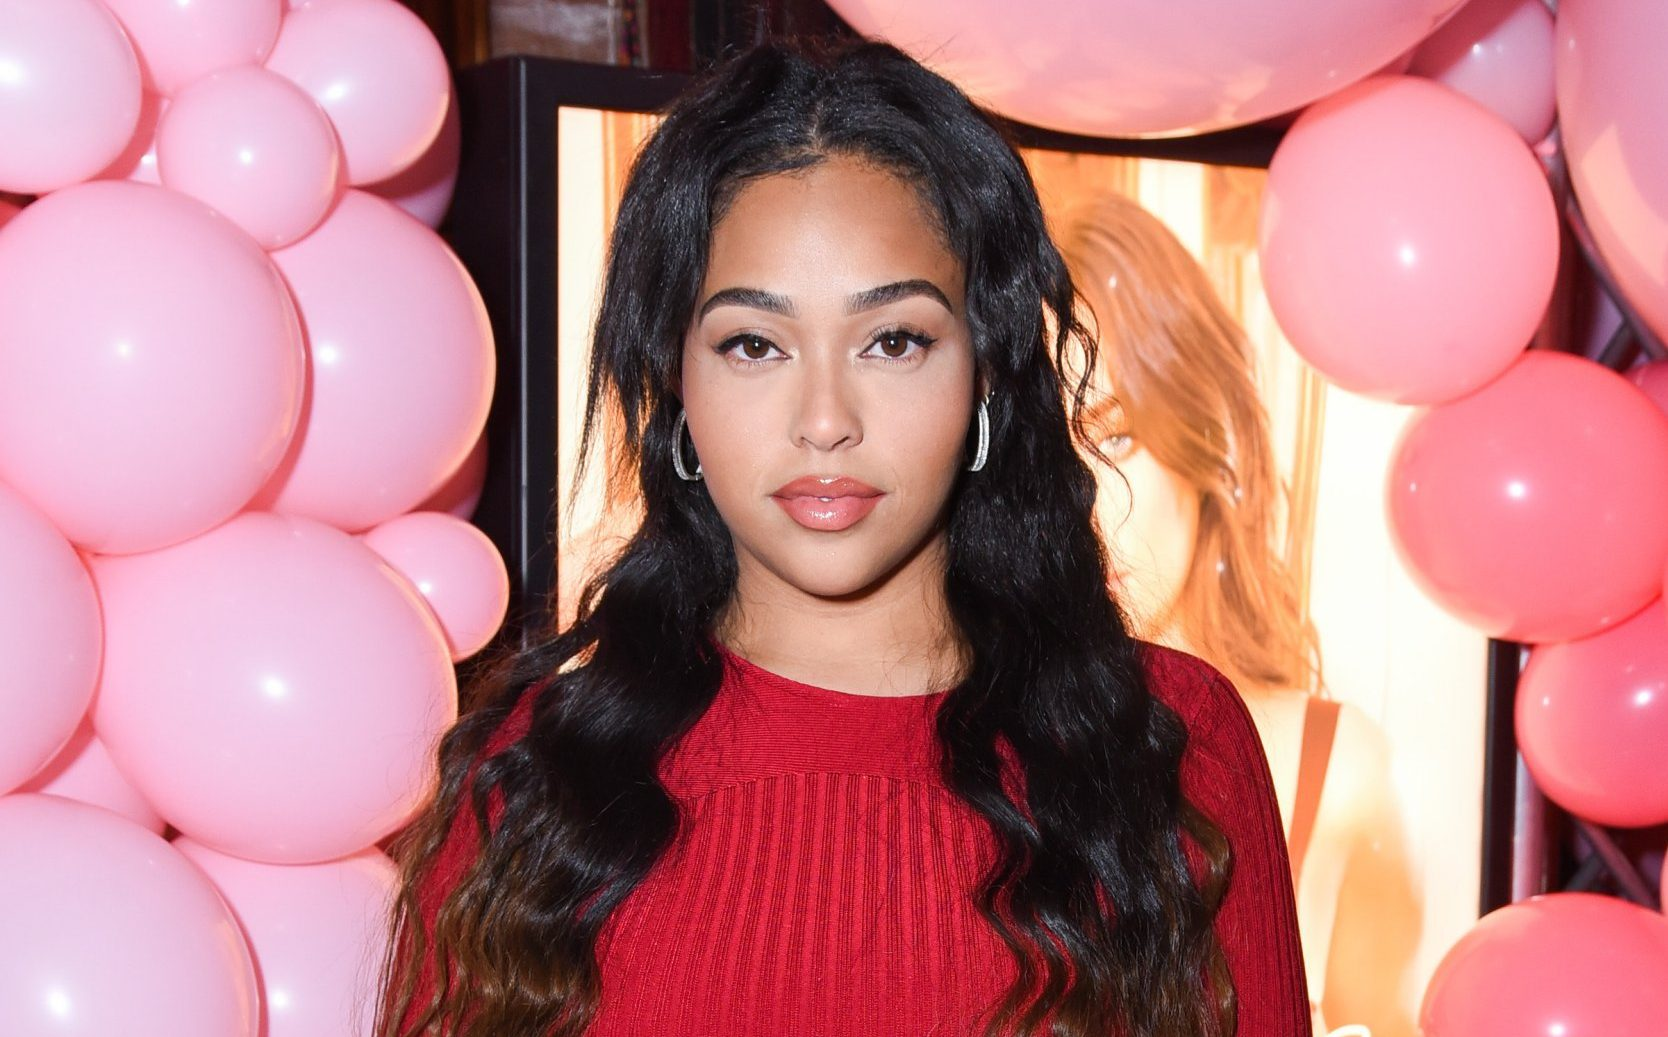 How to watch Jordyn Woods' Red Table Talk interview in the UK